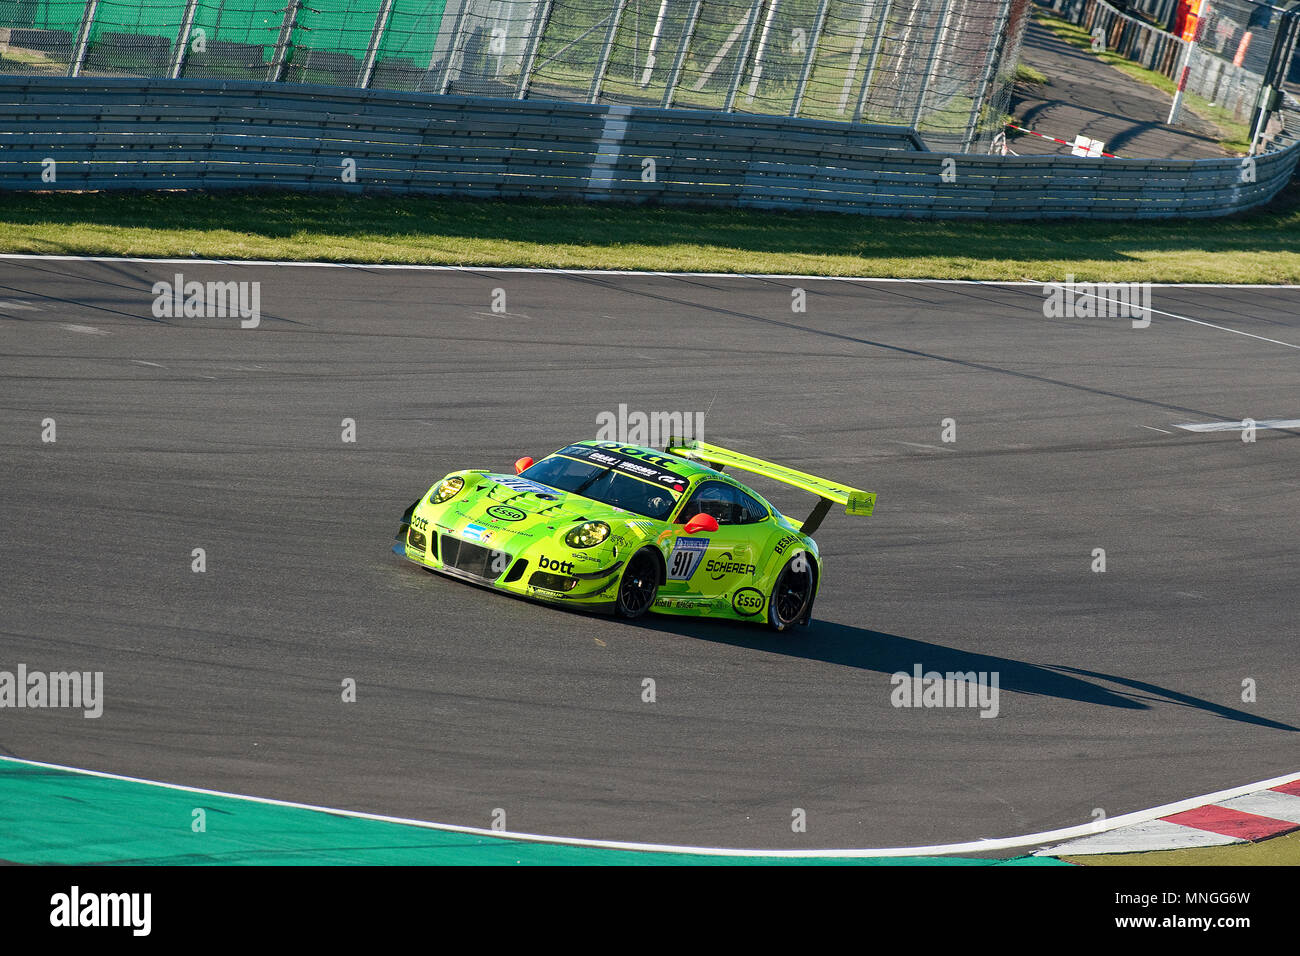 Porsche 911 GT3 R, Nuerburgring, 24h Nuerburgring, motorsports, curves, curbes, racing, top gear, high speed, fast and furious, green hell, top gear,  - Stock Image